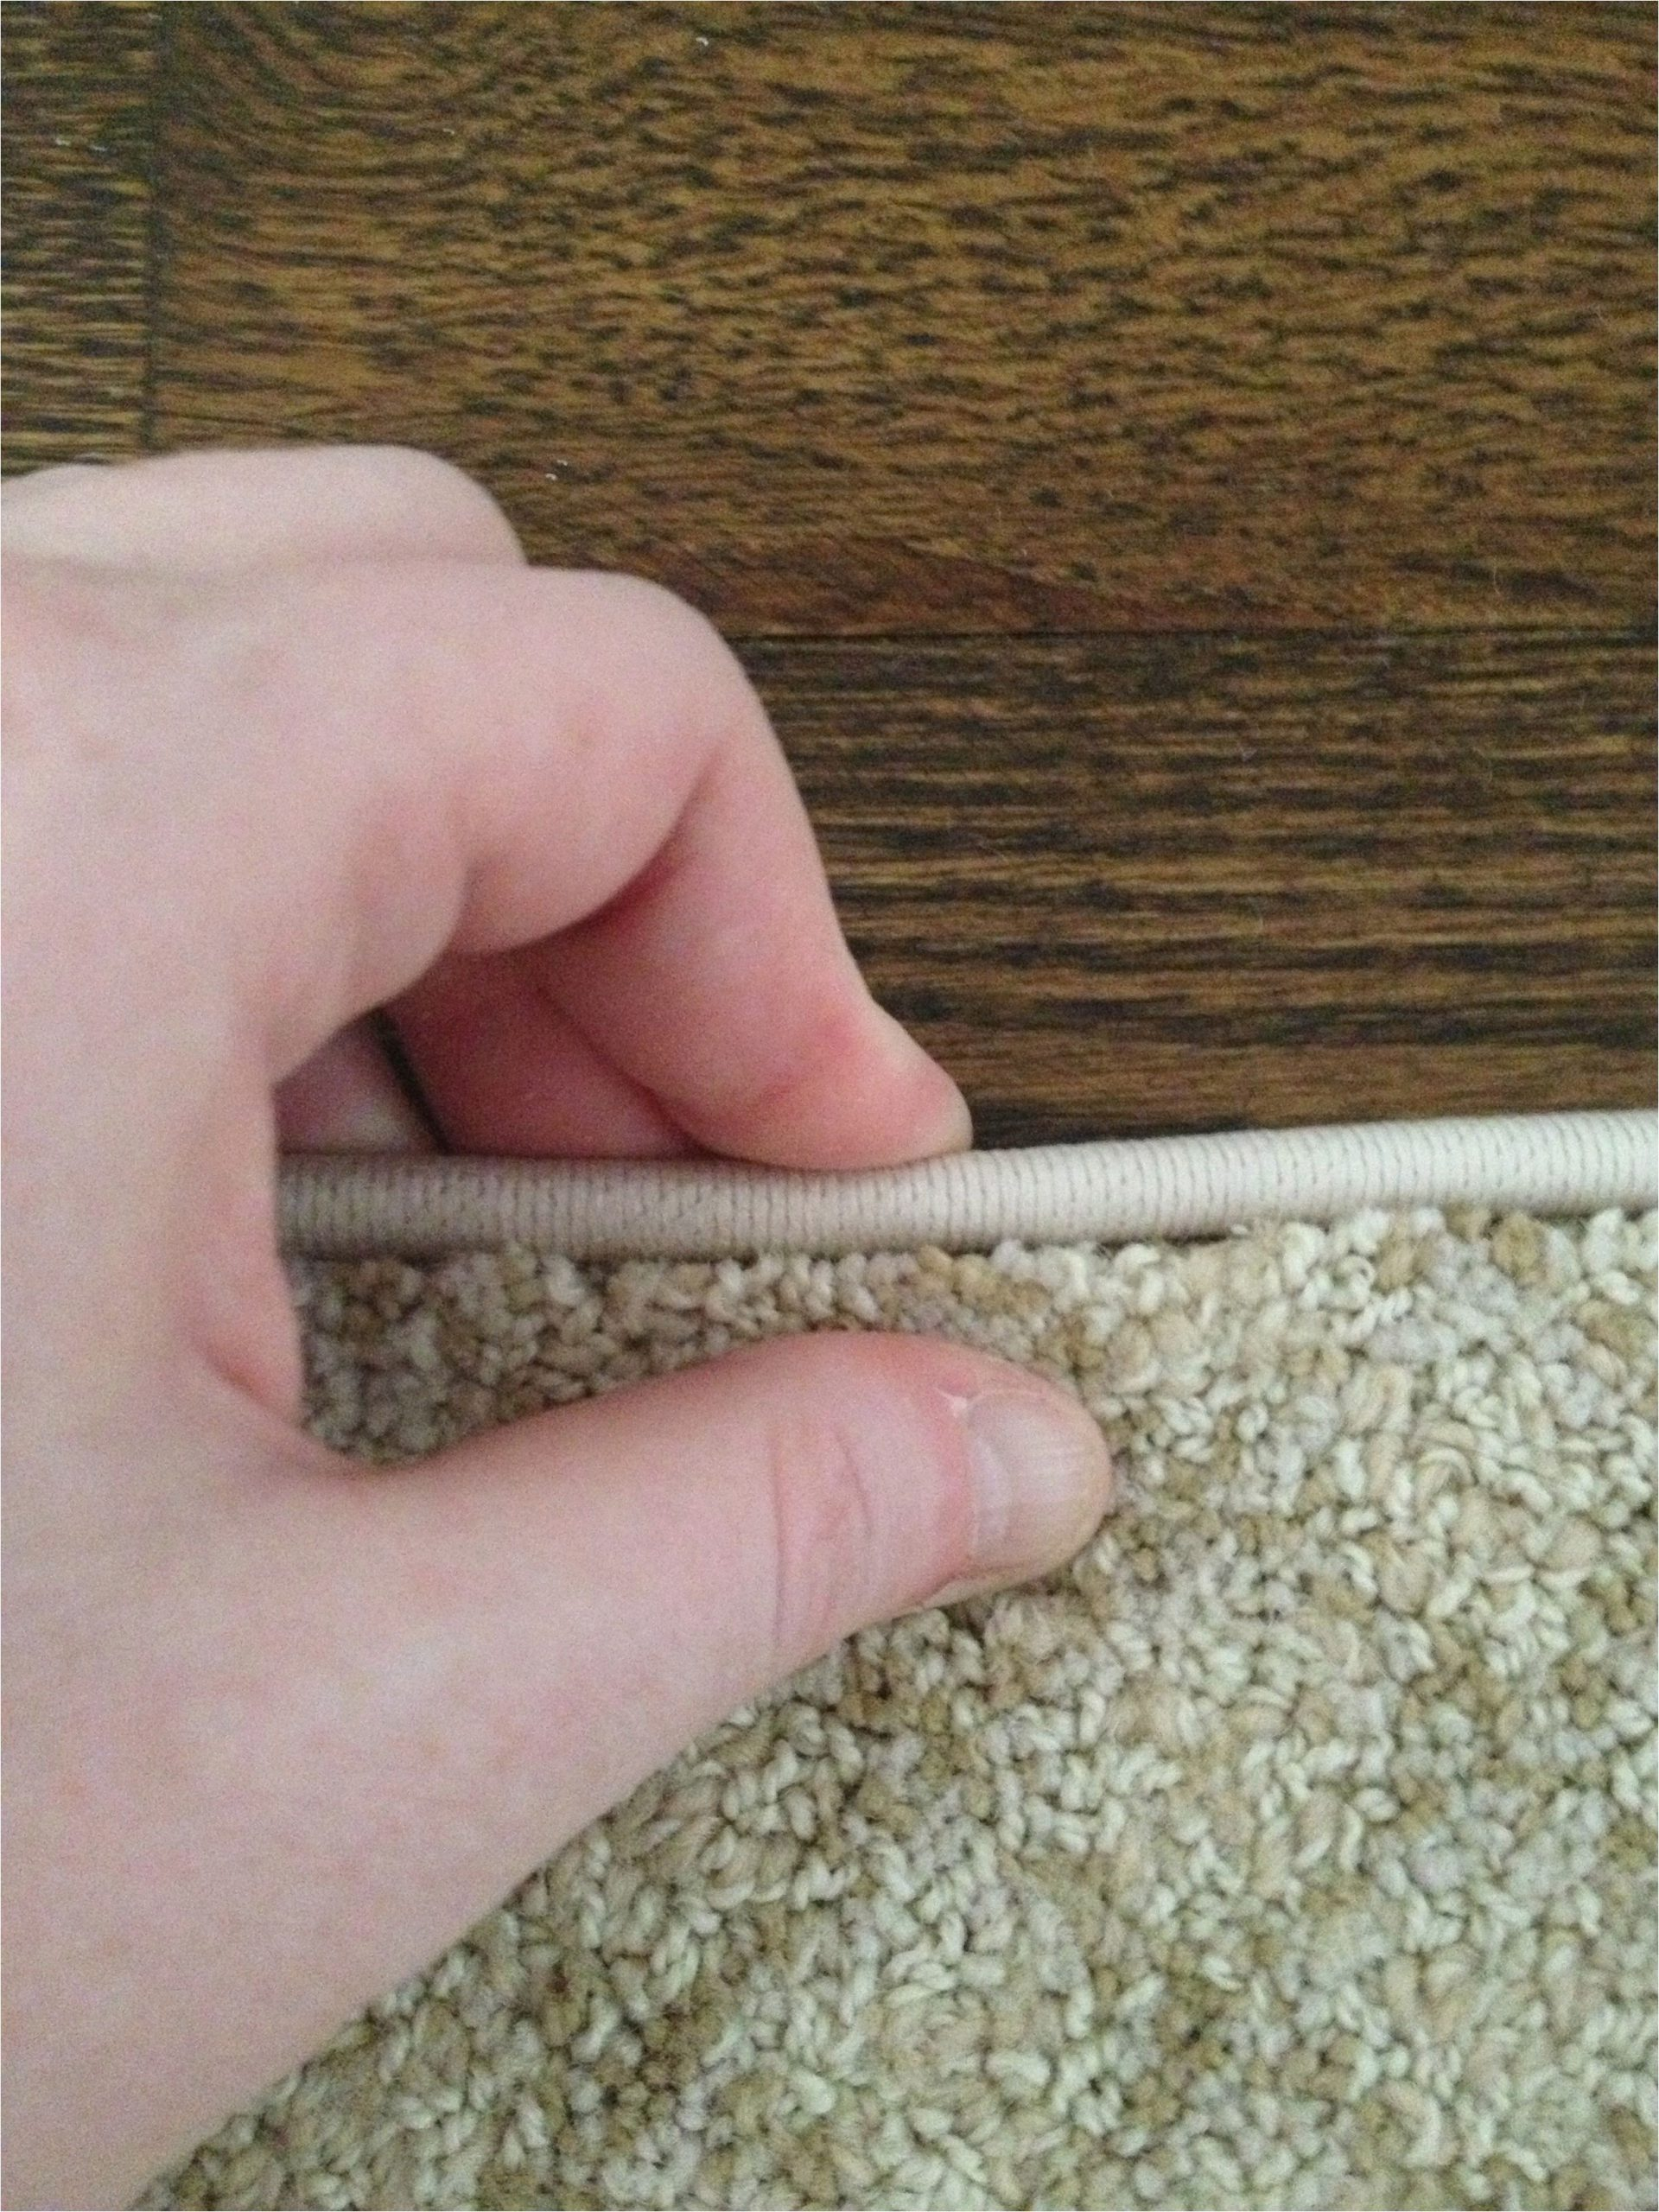 Rug Binding In My area How to Turn A Carpet Remnant Into A Rug